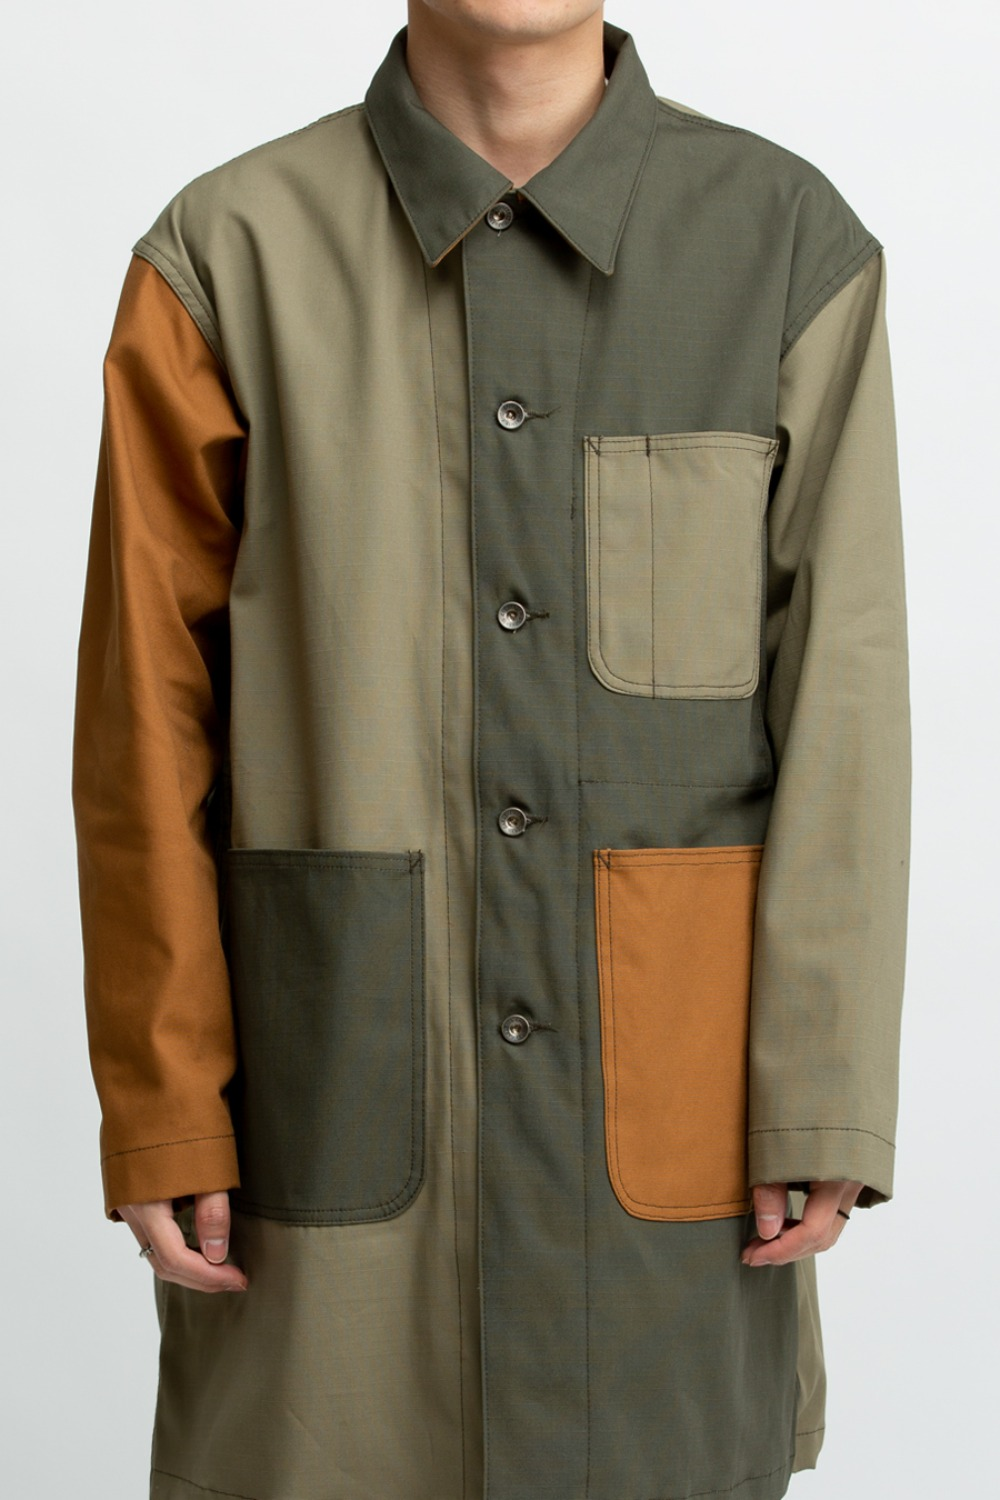 SHOP COAT COMBO OLIVE COTTON RIPSTOP